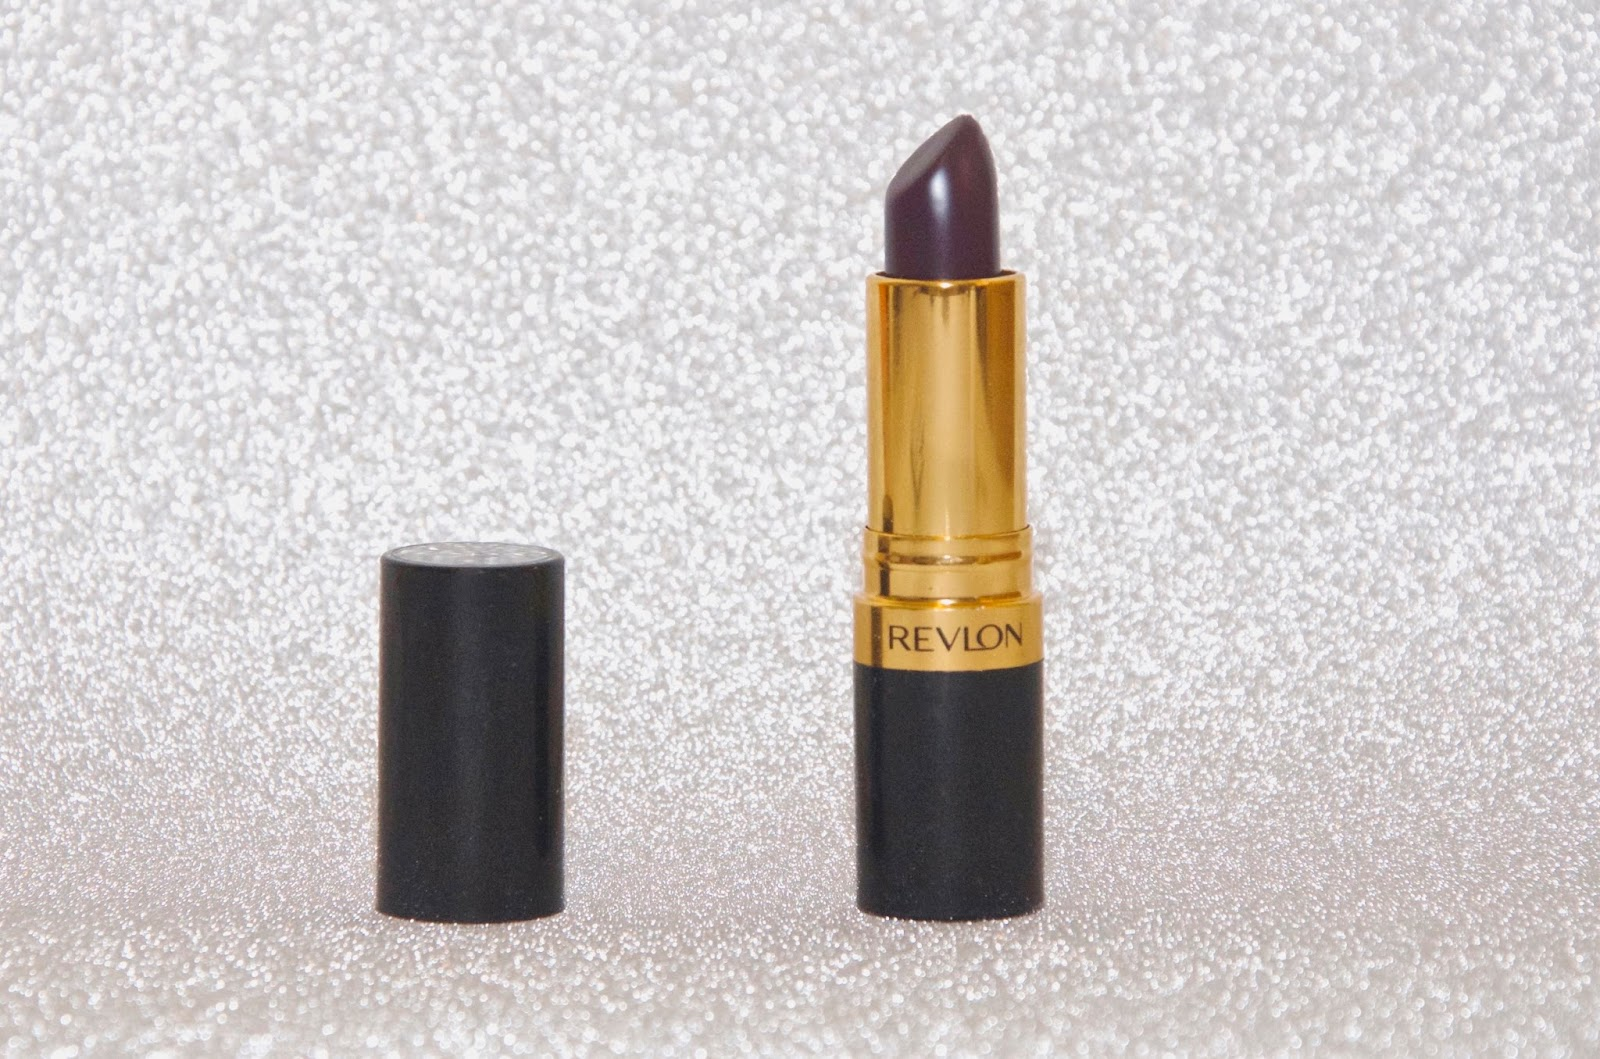 Revlon Super Lustrous Lipstick in Va Va Violet on Silver Glitter Background